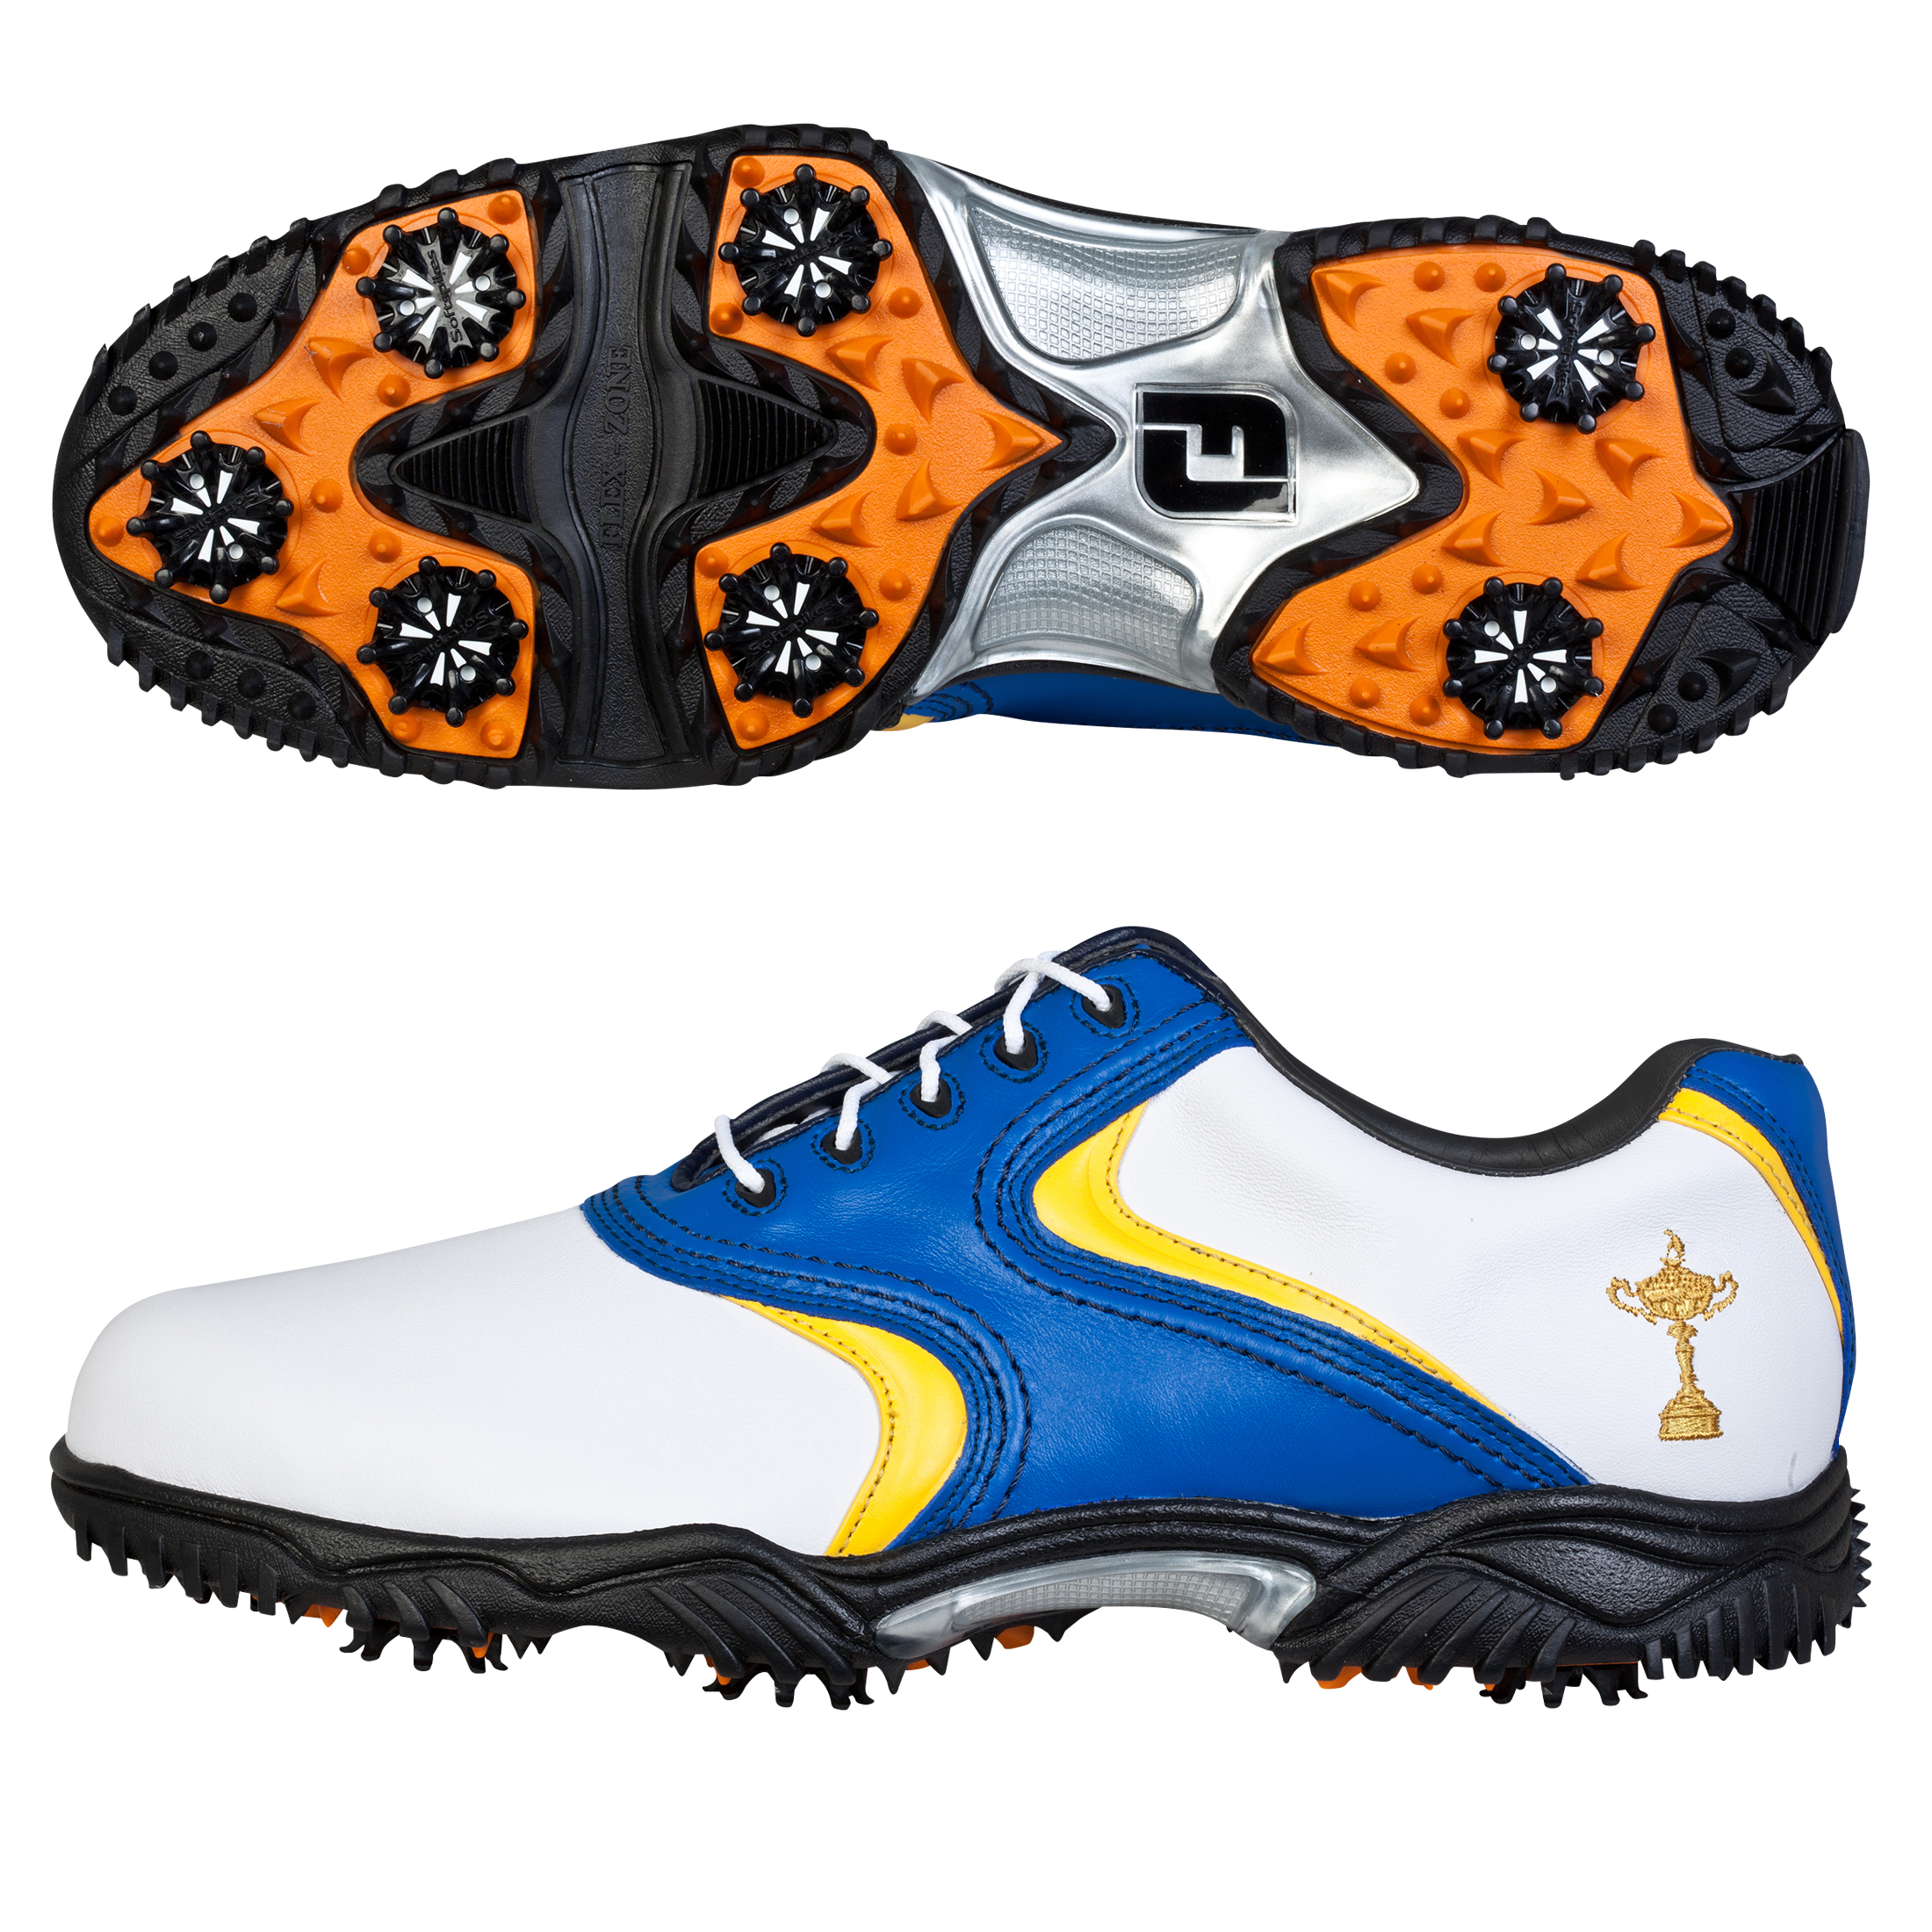 The 2016 Ryder Cup MyJoys Contour Classic Golf Shoes